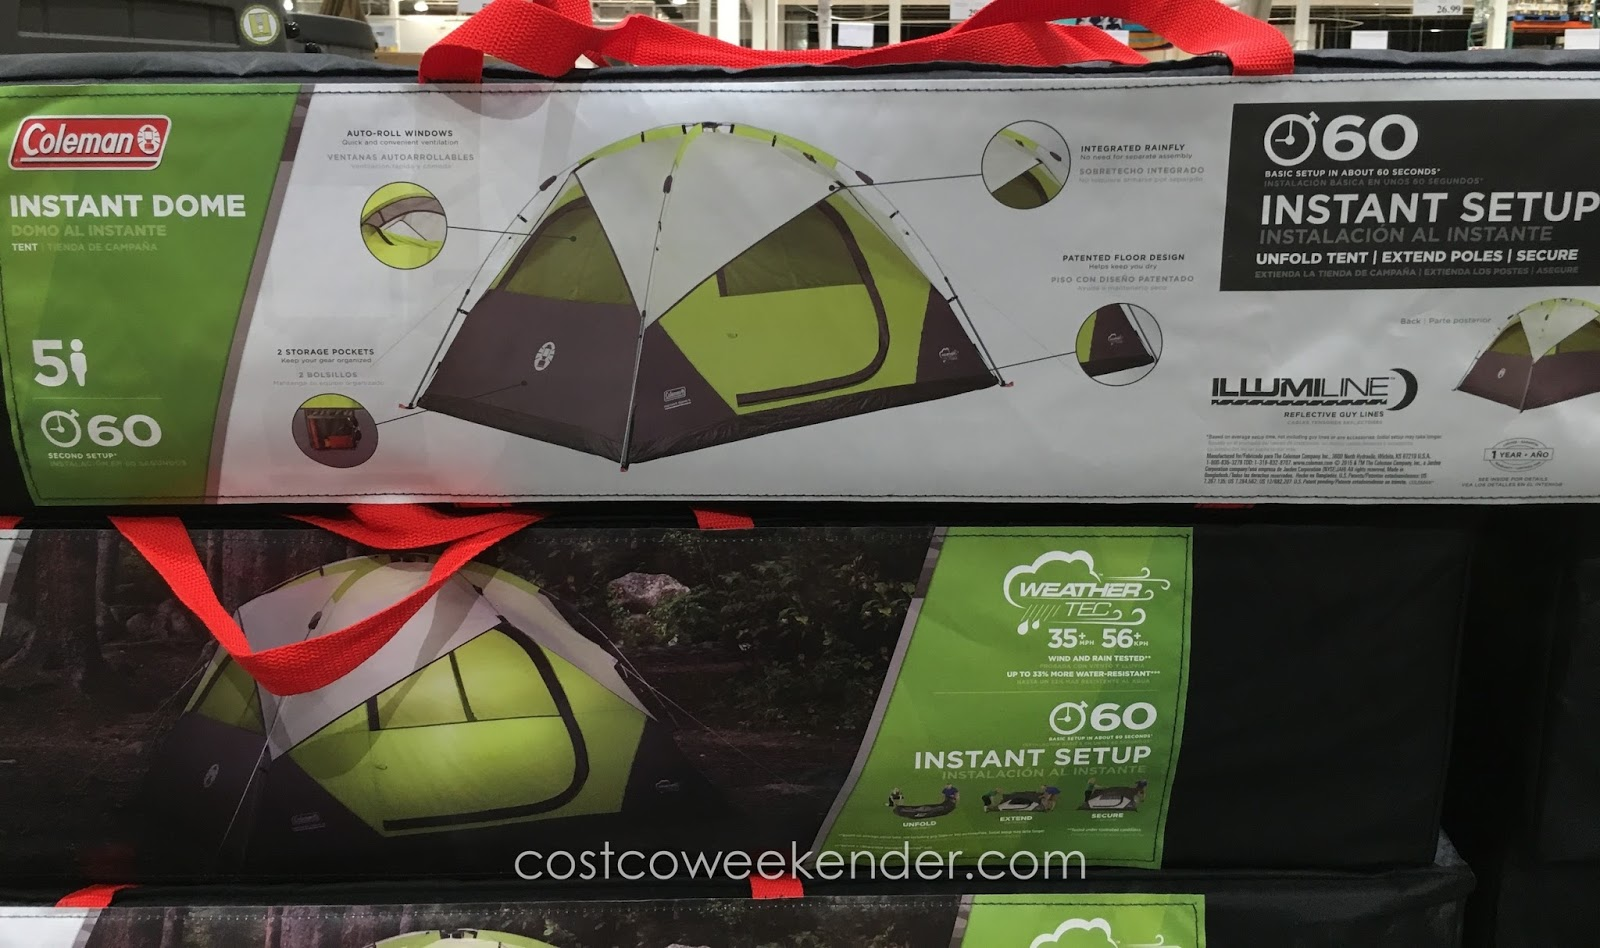 Roughing it is more manageable with the Coleman 5-Person Instant Dome Tent & Coleman 5-Person Instant Dome Tent | Costco Weekender